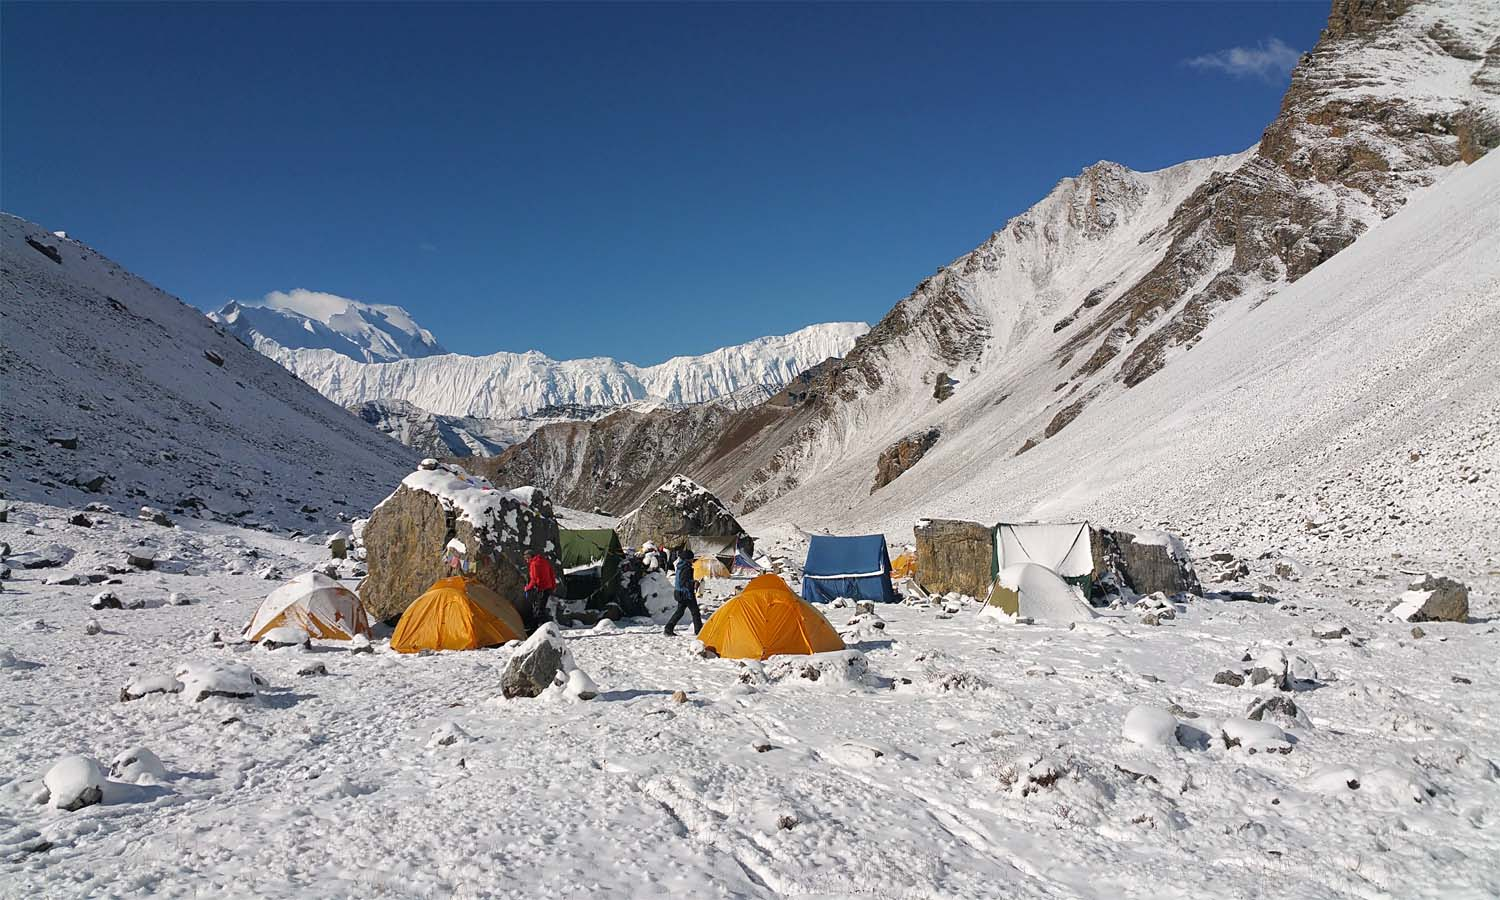 Camp de base Chulu West 4800 m